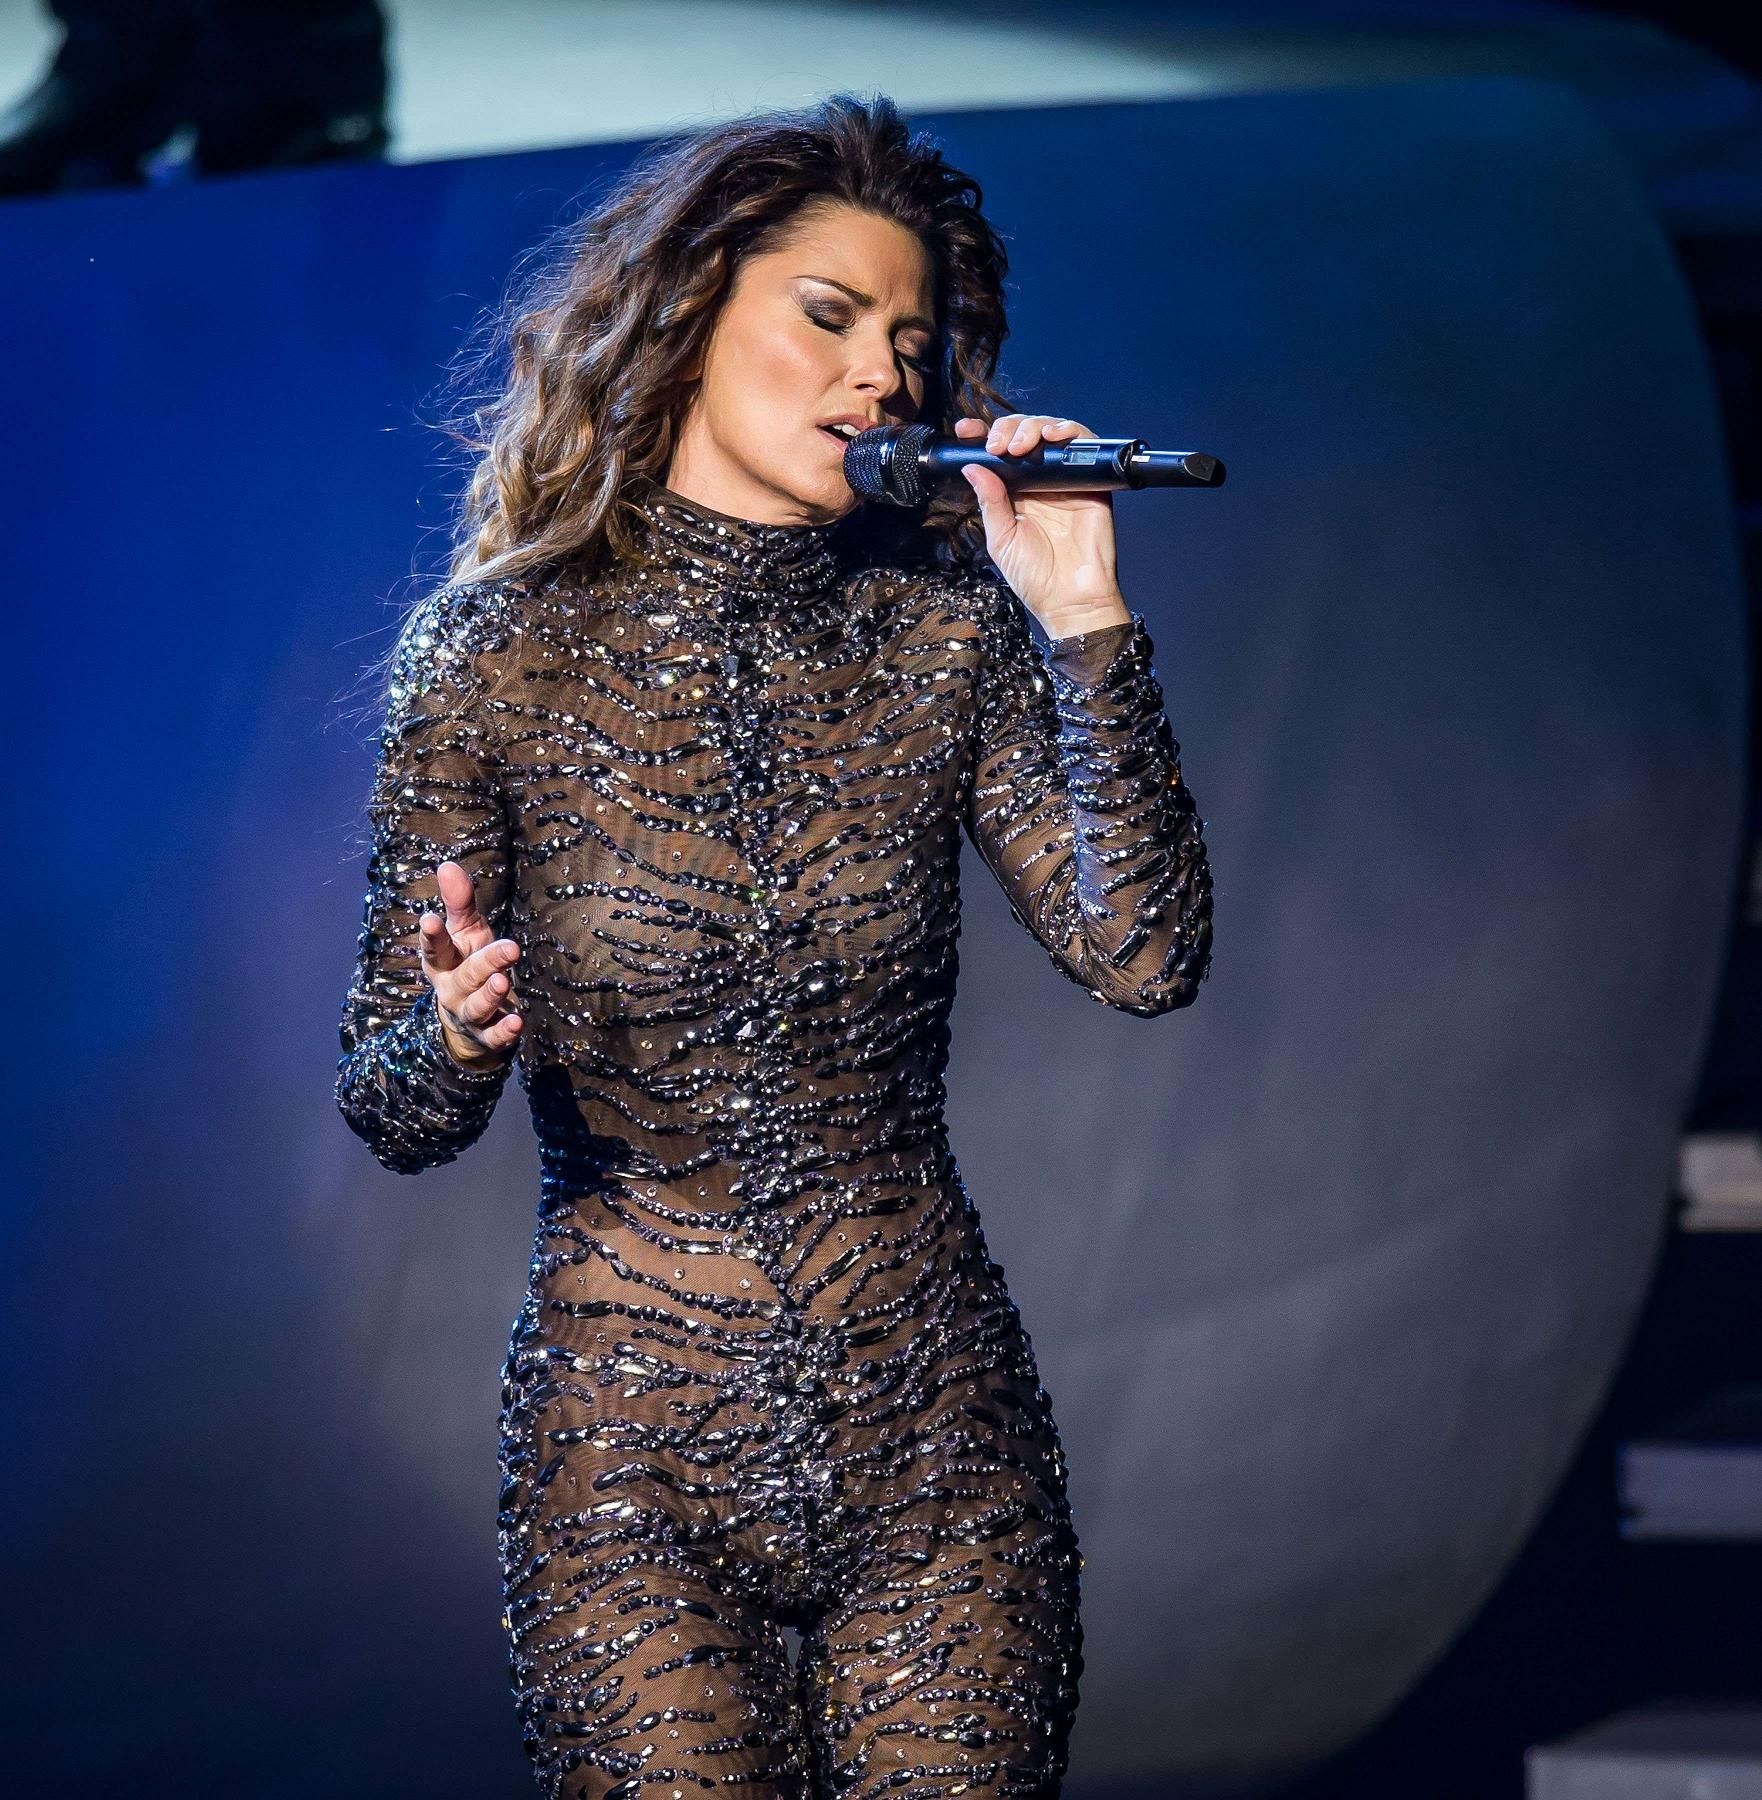 Rule 5 Friday: Shania Twain – She Is Still The One | The